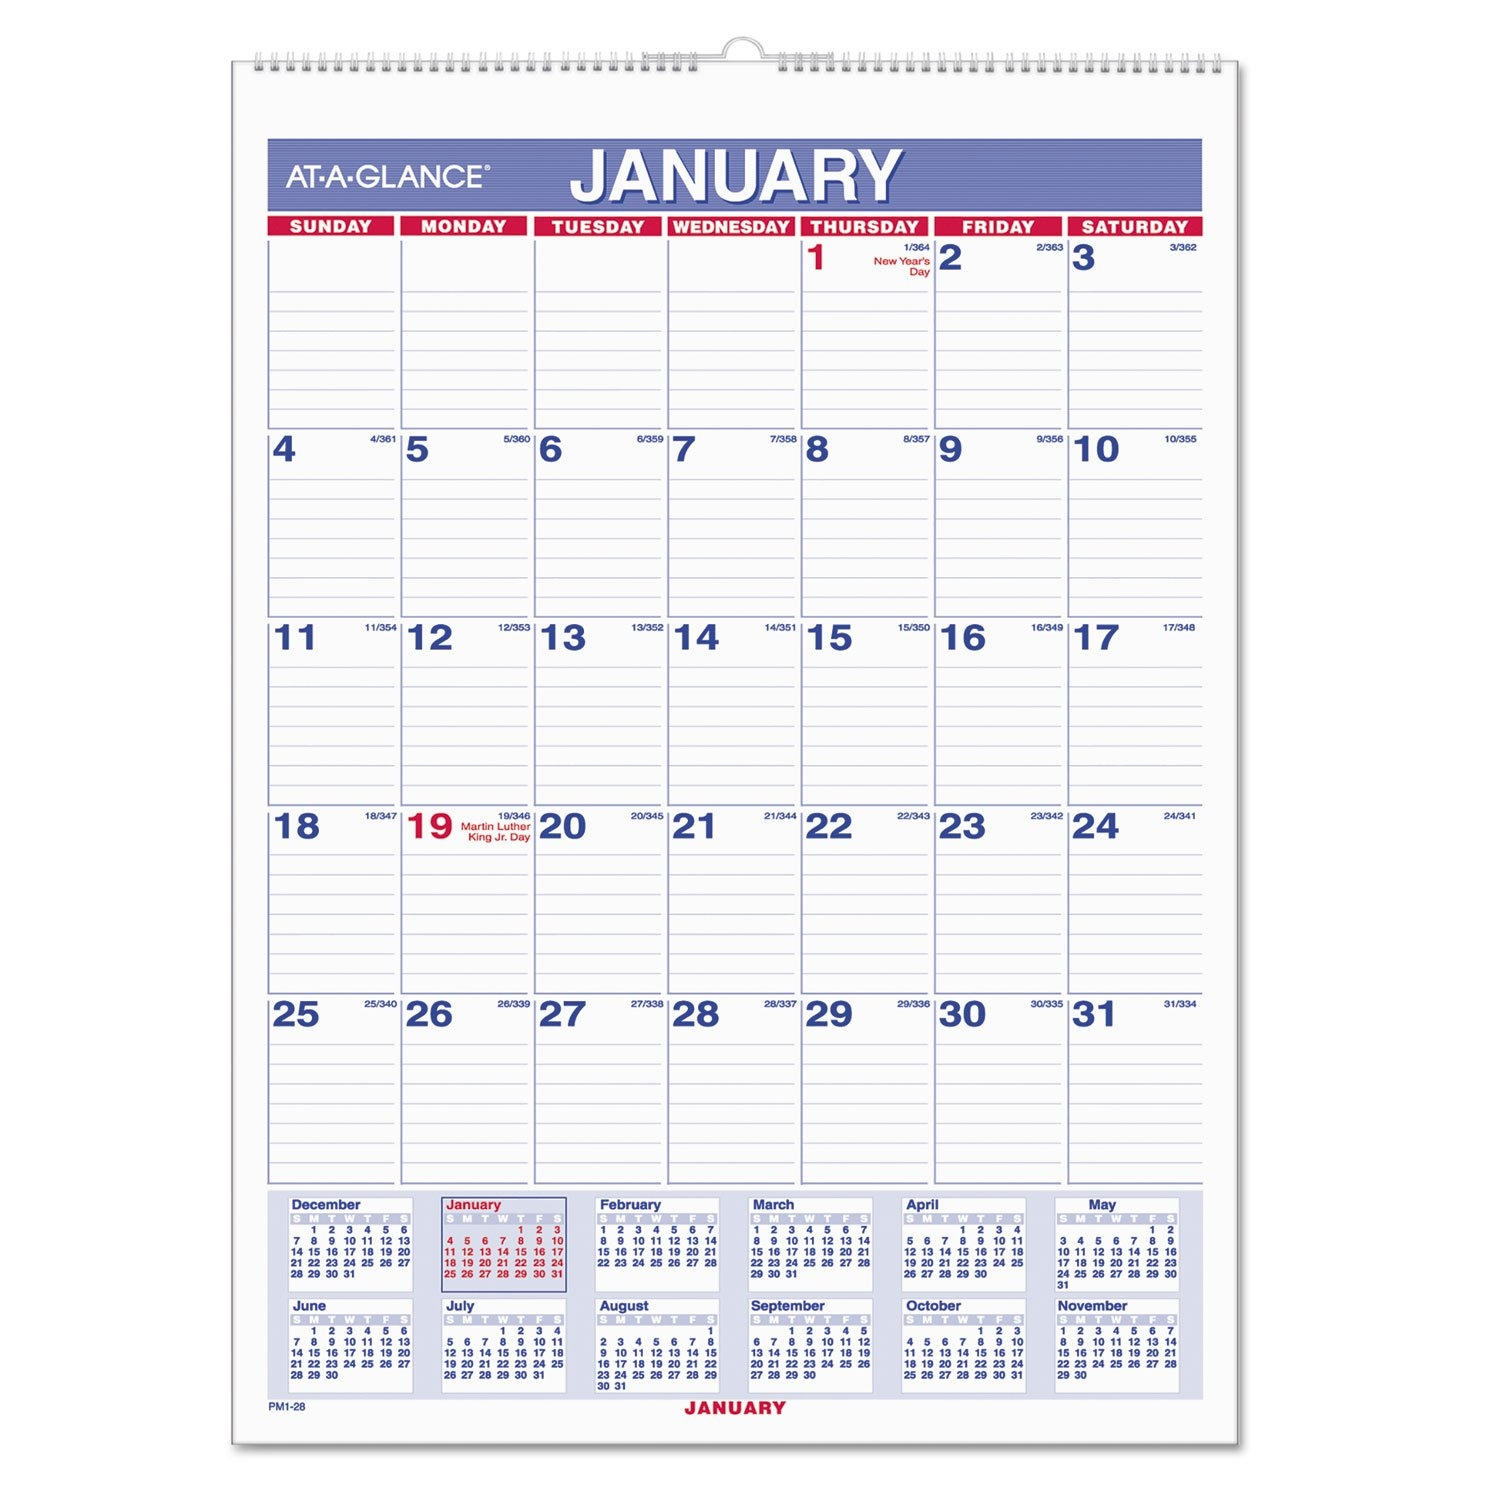 Monthly Wall Calendar With Ruled Daily Blocksat-A-Glance 2019 Calendar 8X11